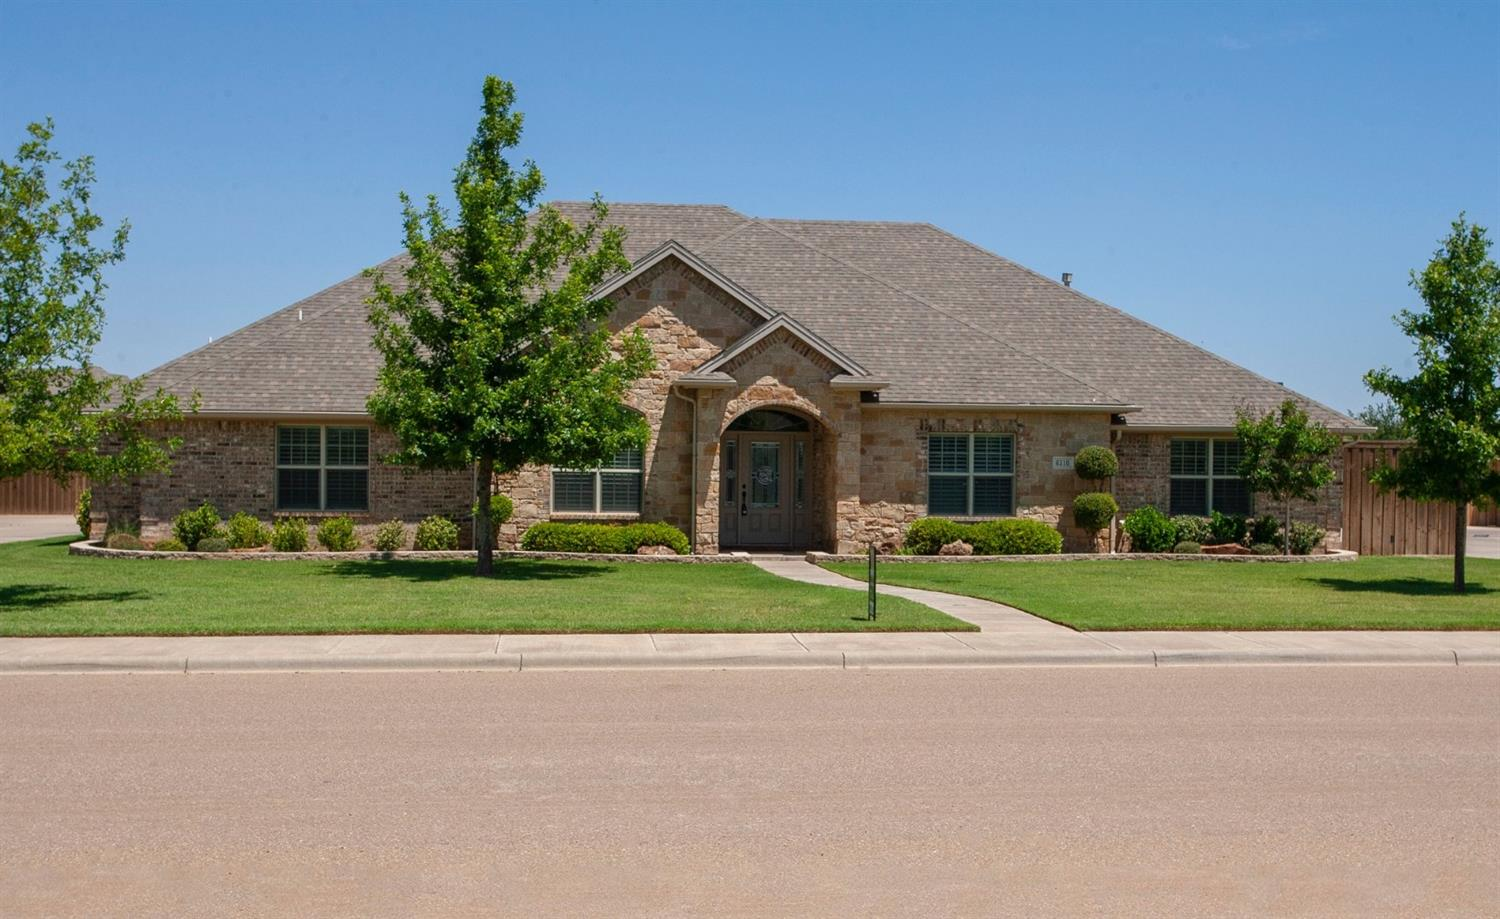 6310 112th Street, Lubbock in Lubbock County, TX 79424 Home for Sale